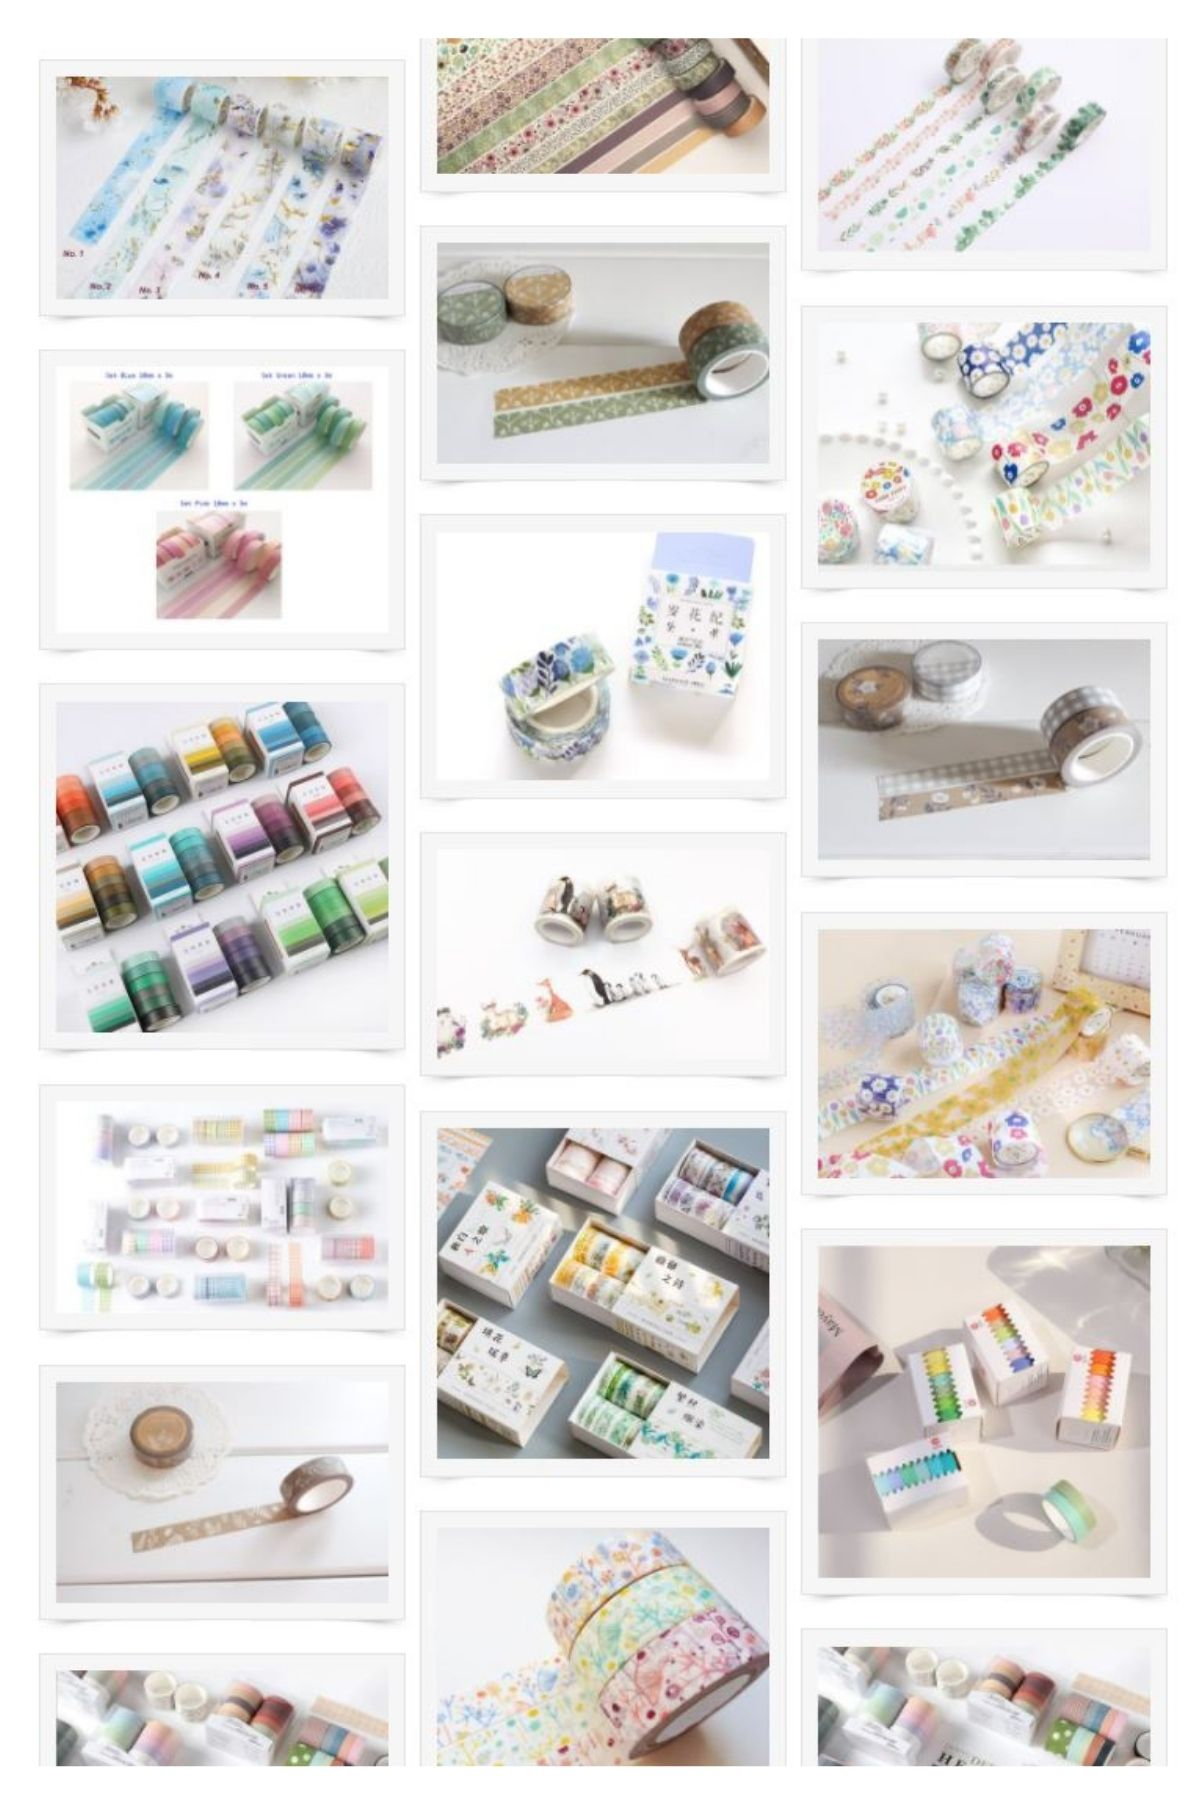 A collage of washi tape from various Etsy shops.